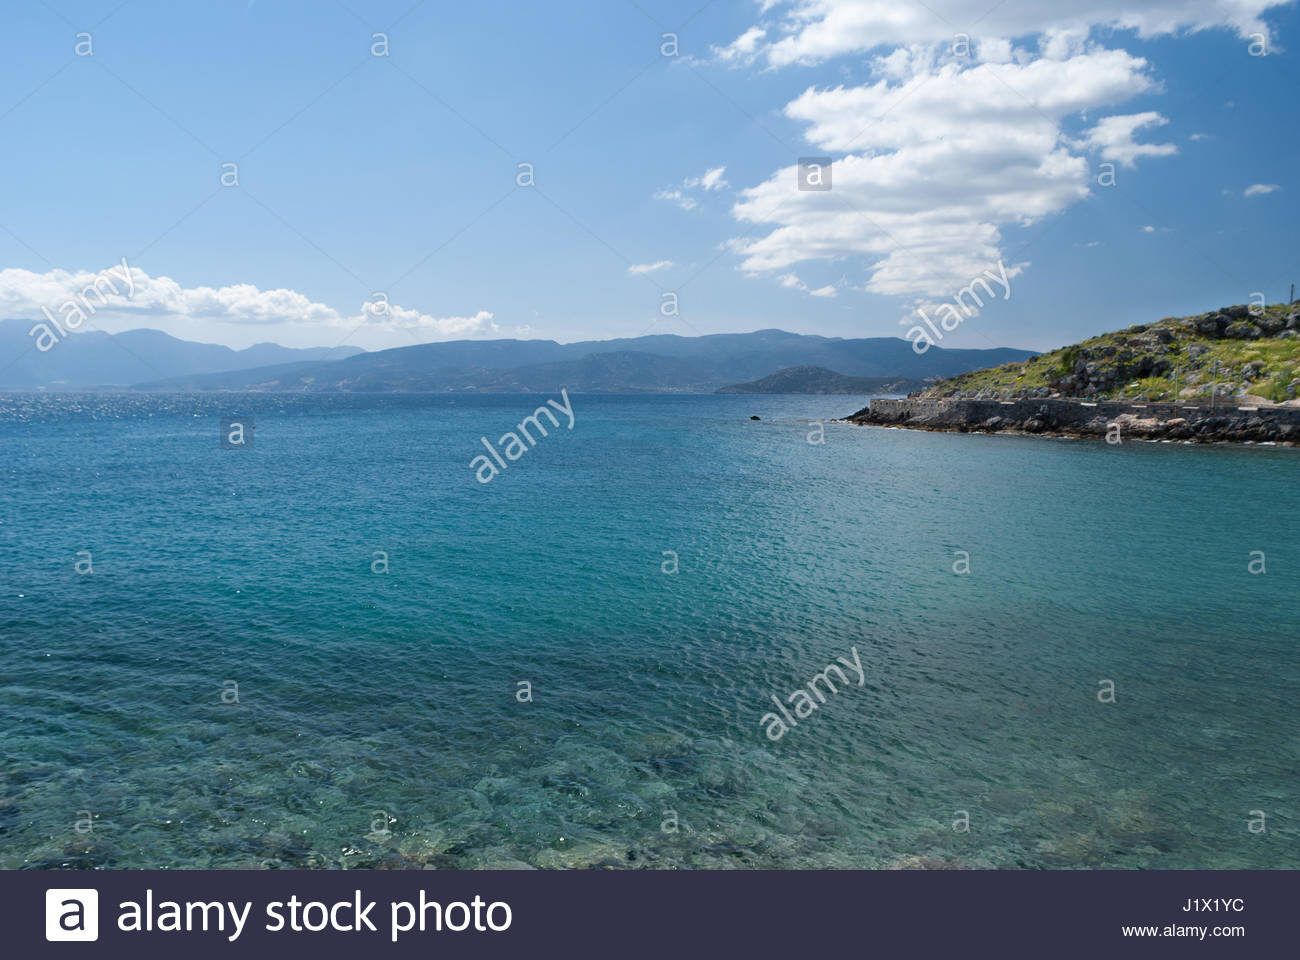 Rock waterfront seacscape & mountains across water Stock Photo